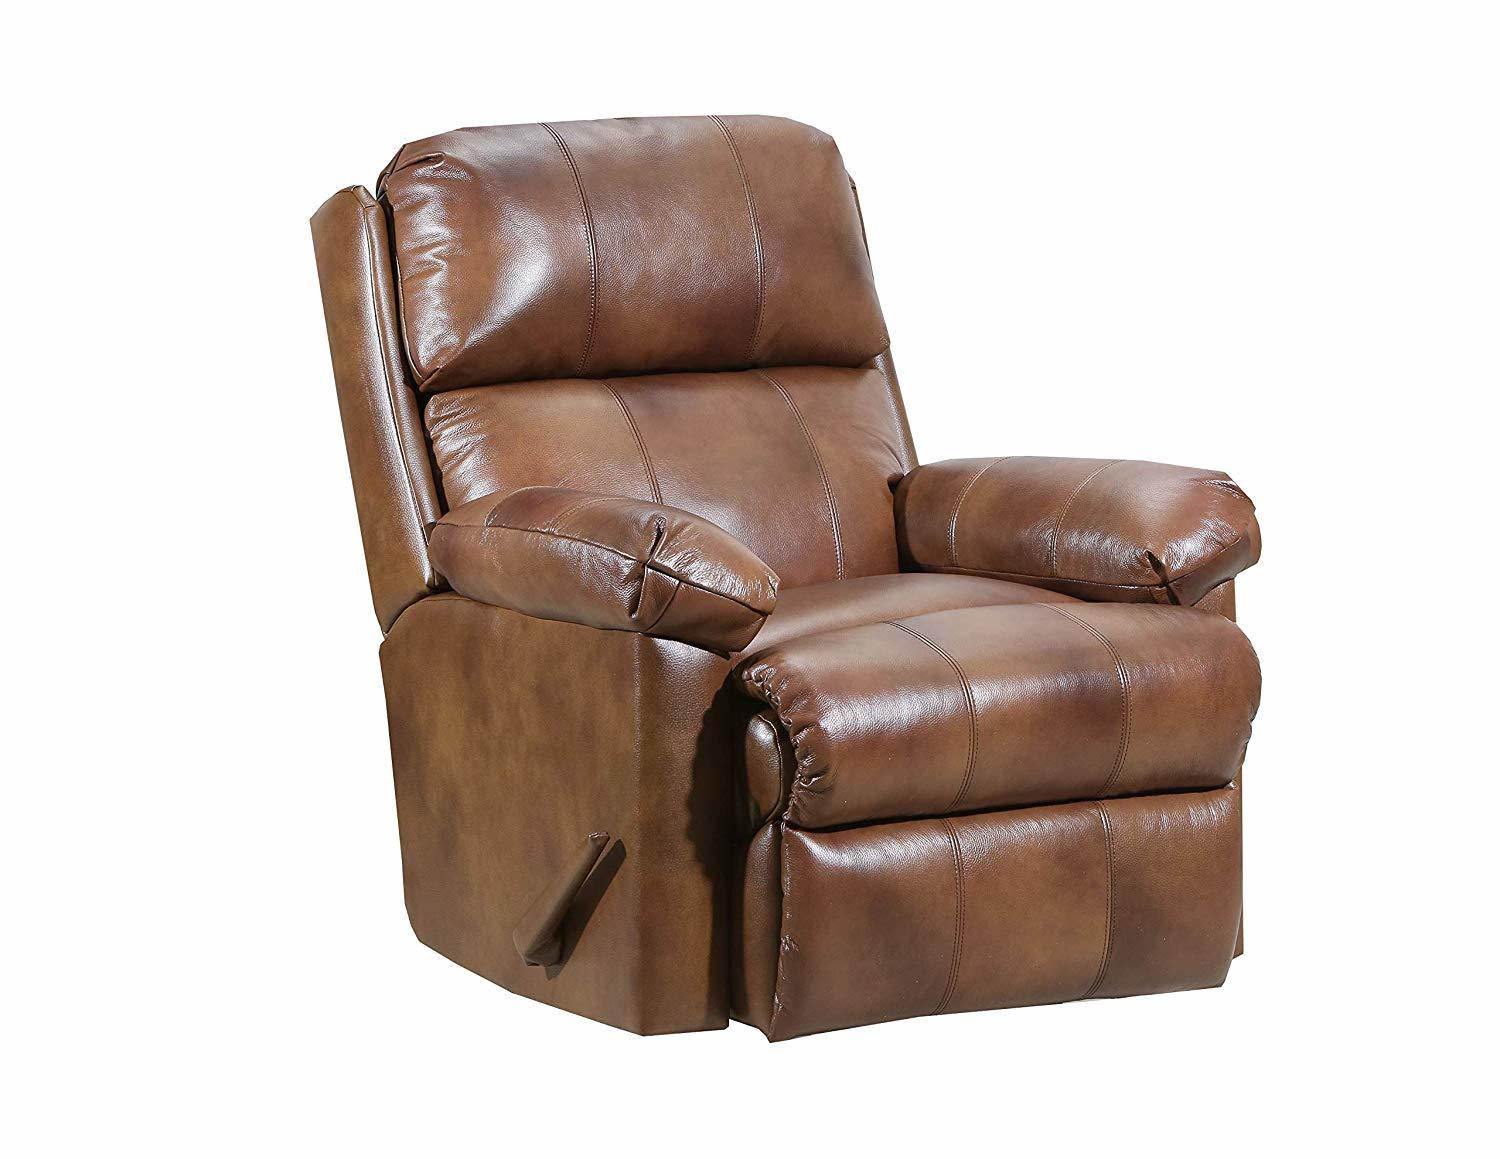 Best Lane Recliners Home Furnishings 4205 18 Soft Touch Chaps Swivel Rocker Recliner